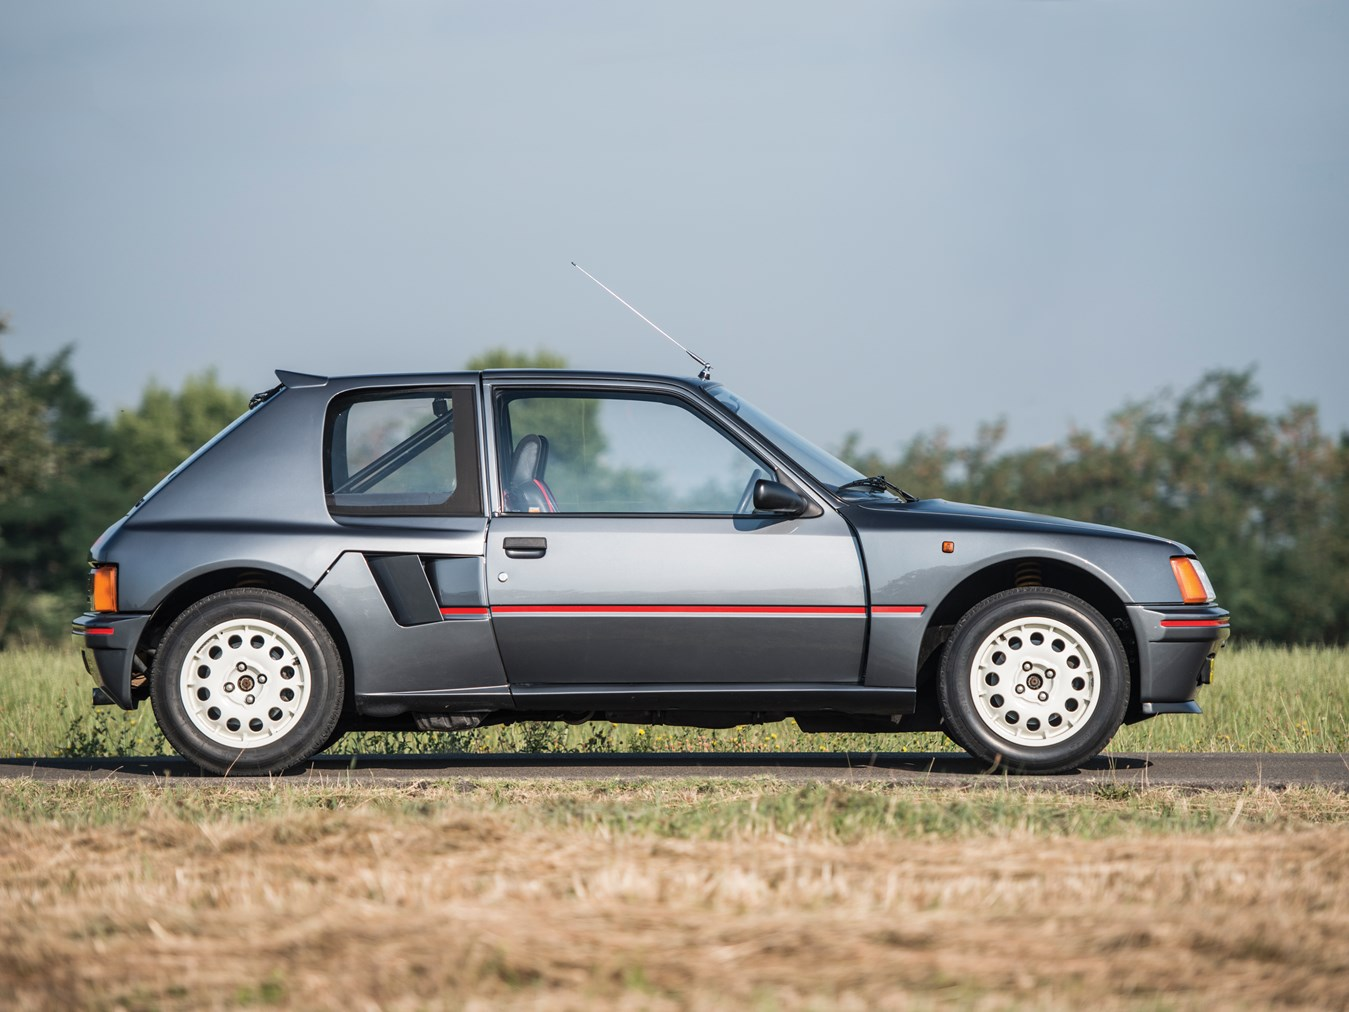 File:Peugeot 205 t16 (rotated).jpg - Wikimedia Commons